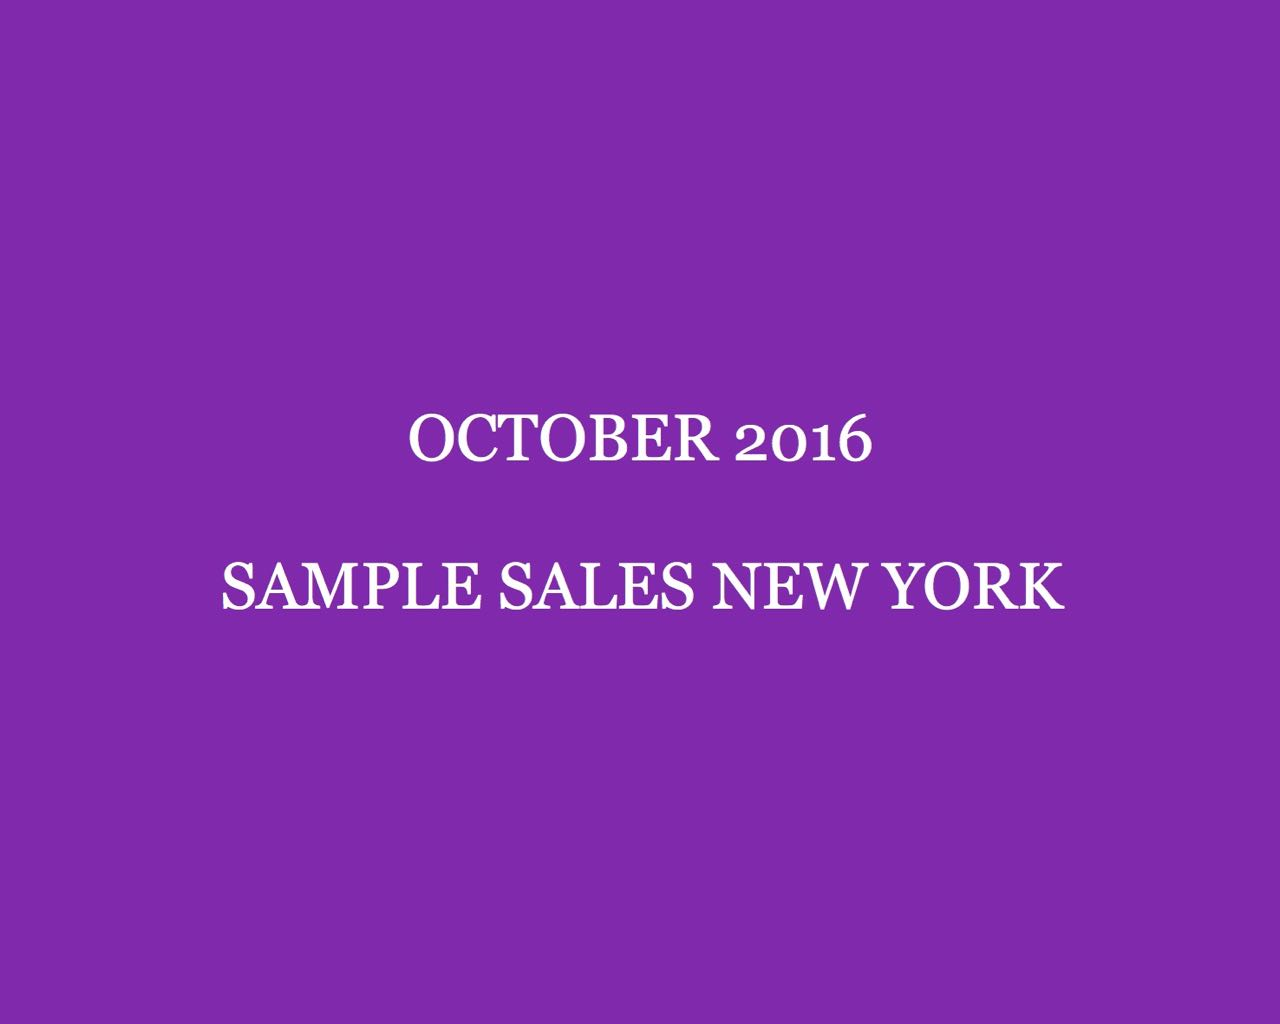 october-2016-sample-sales-new-york-style-barista-new-york-sample-sales